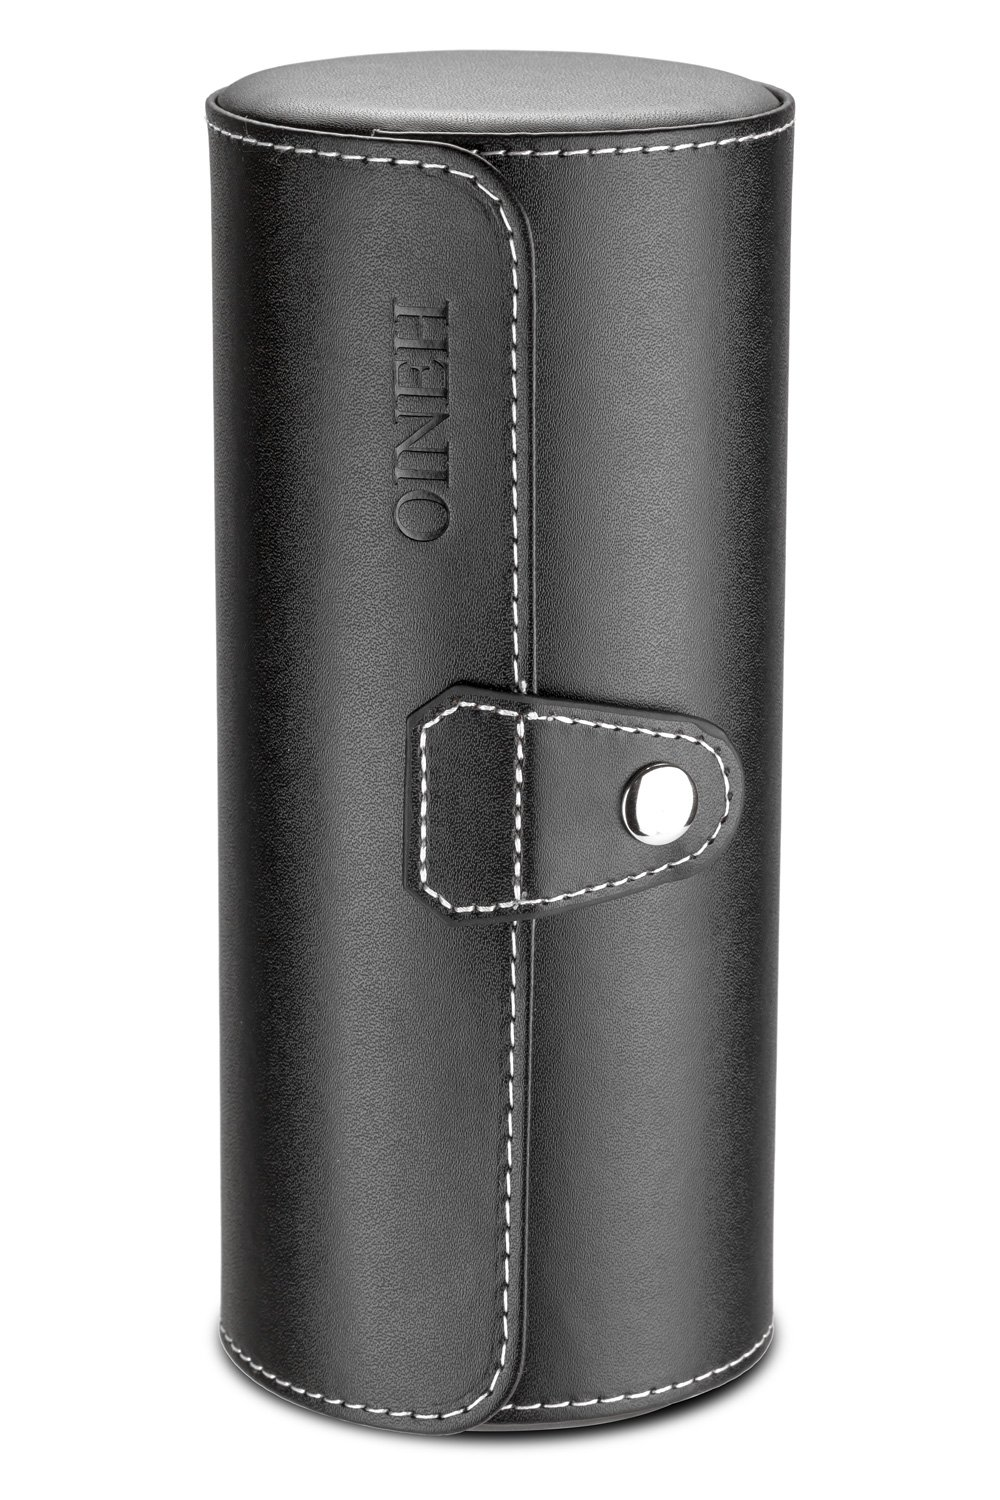 Leatherette Roll Traveler's Watch Storage Organizer for 3 Watch and/or Bracelets (Black) by Oineh (Image #3)